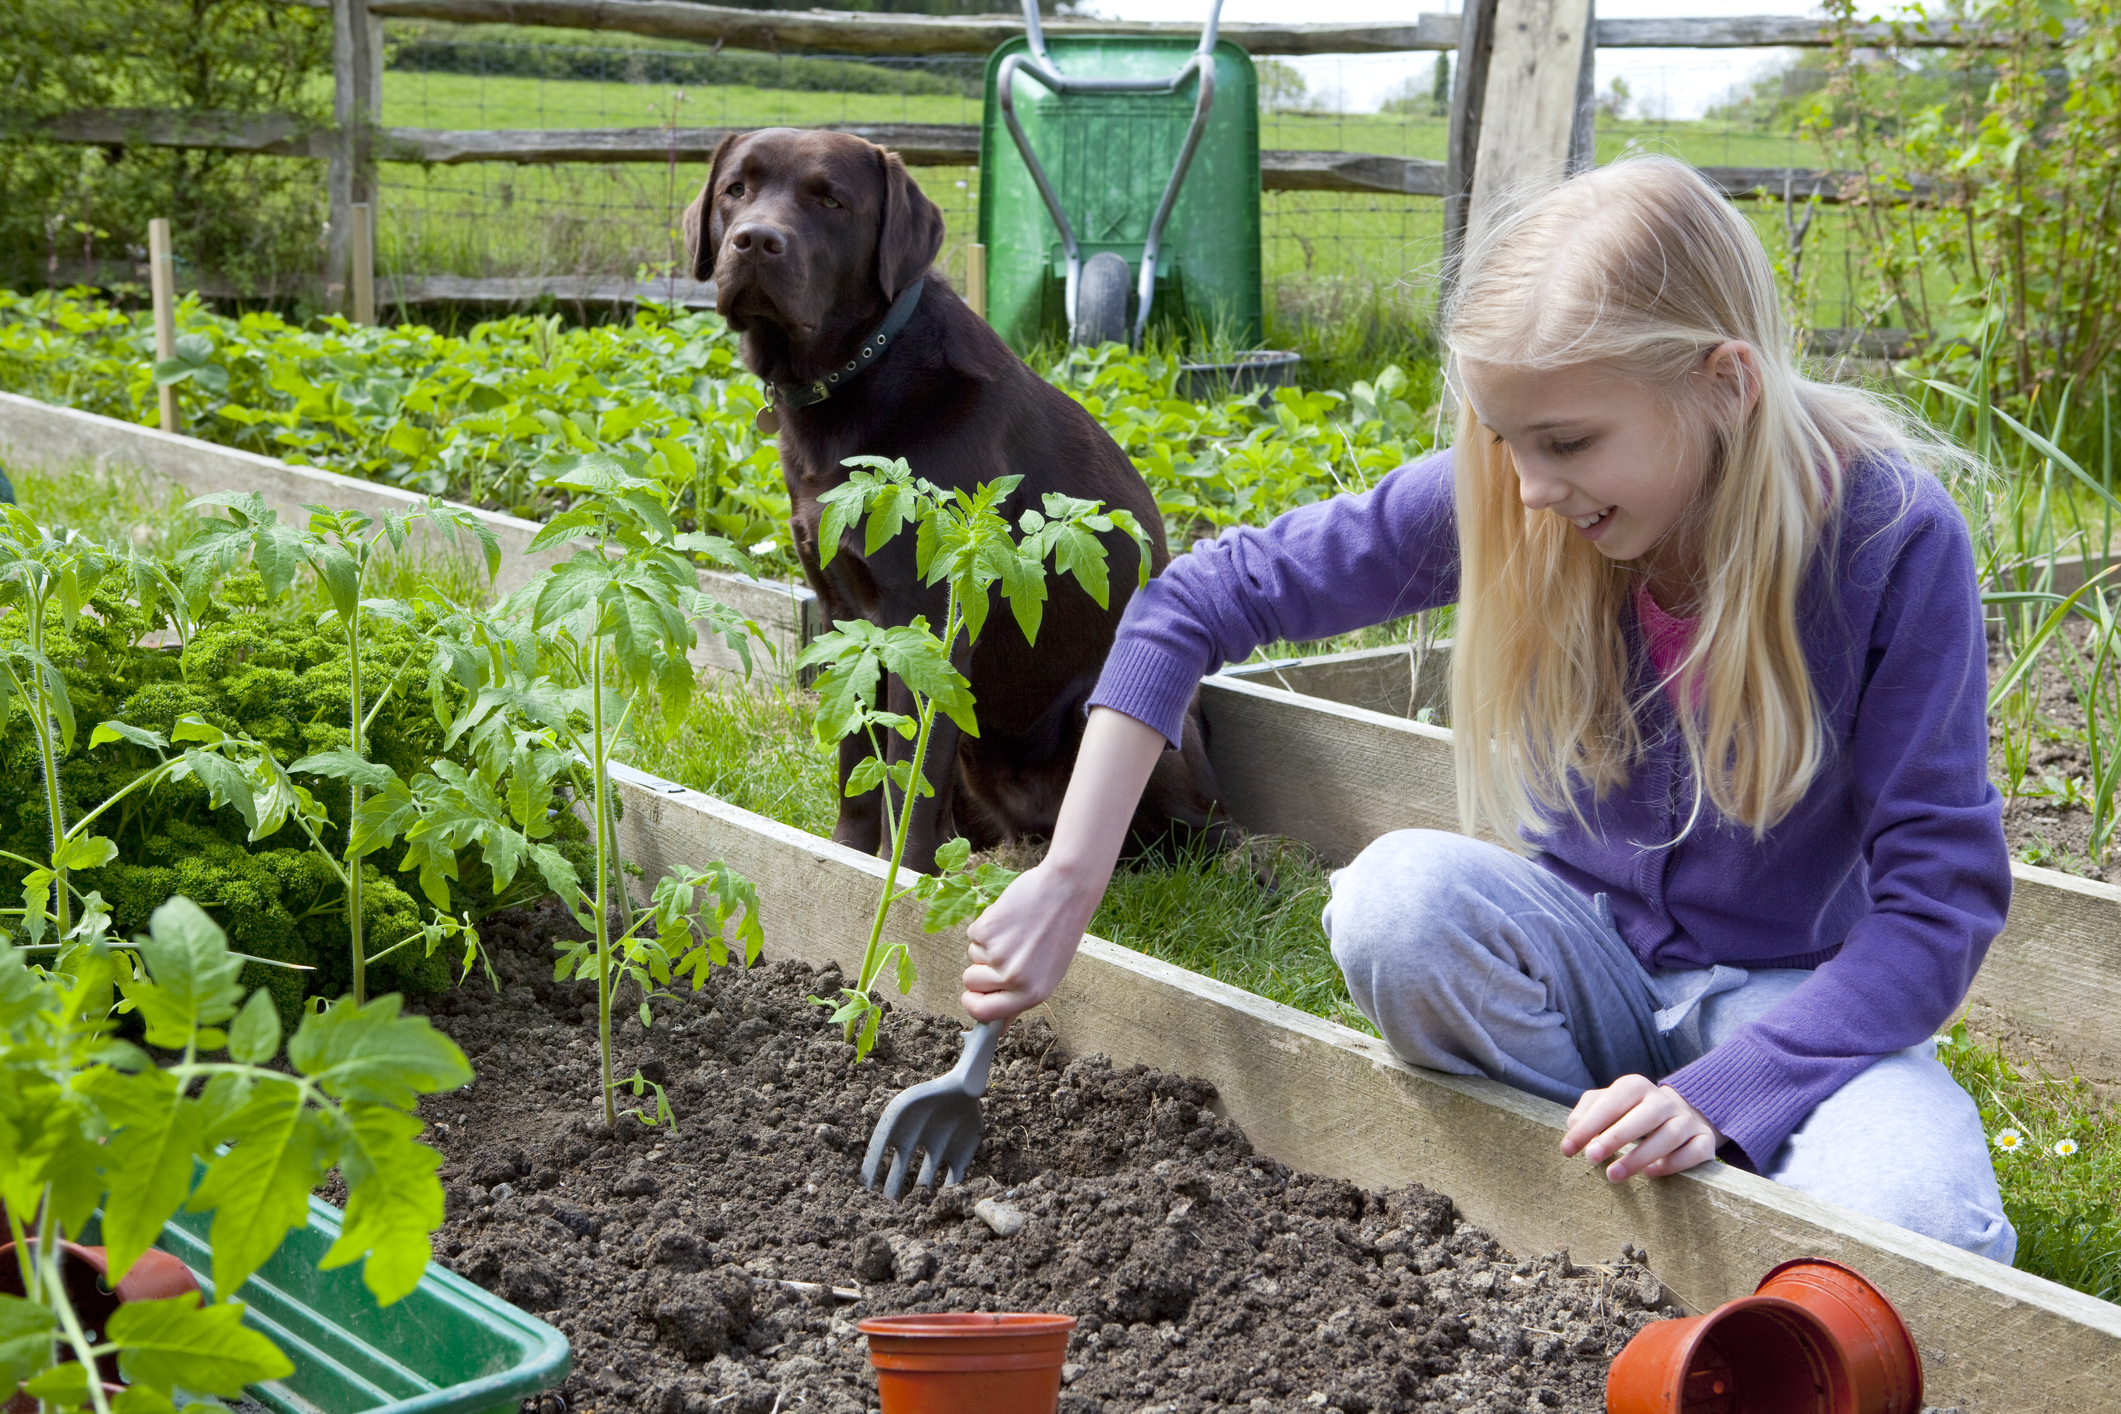 A chocolate lab sits by the vegetable garden while a young girl digs